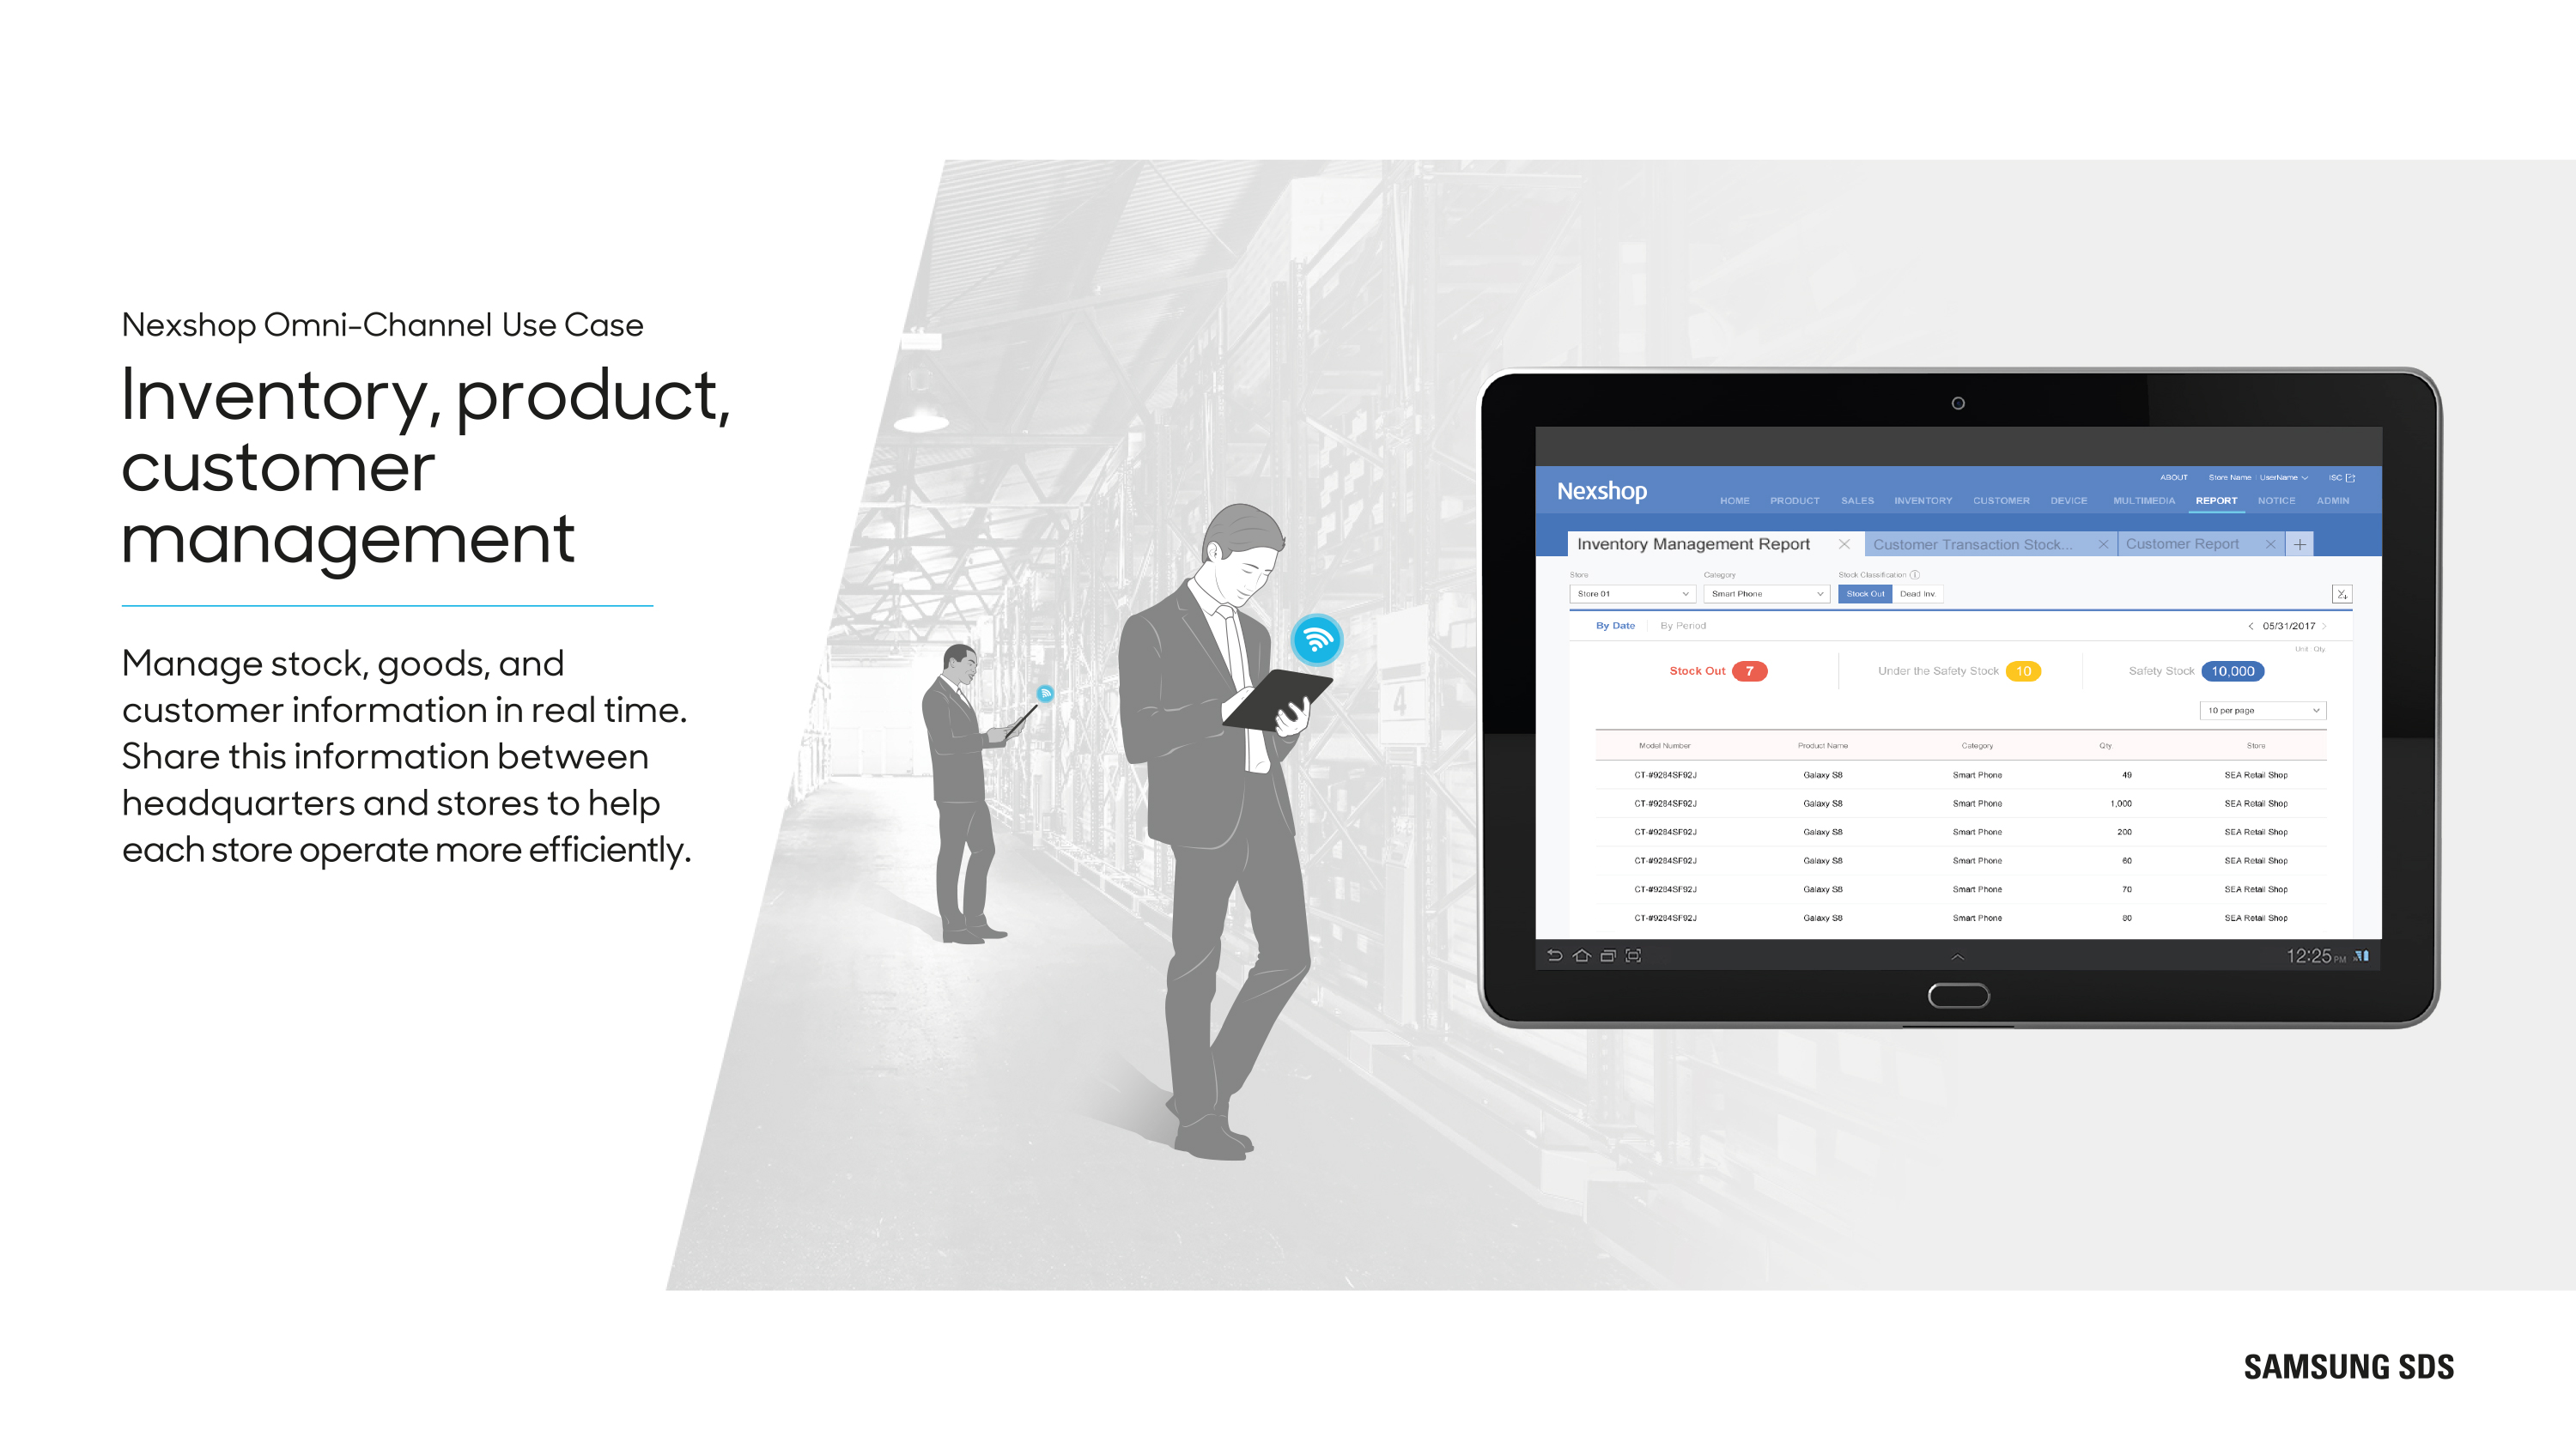 Manage stock, goods, and customer information in real time. Share this information between a headquarter and stores to help each store operate efficiently.